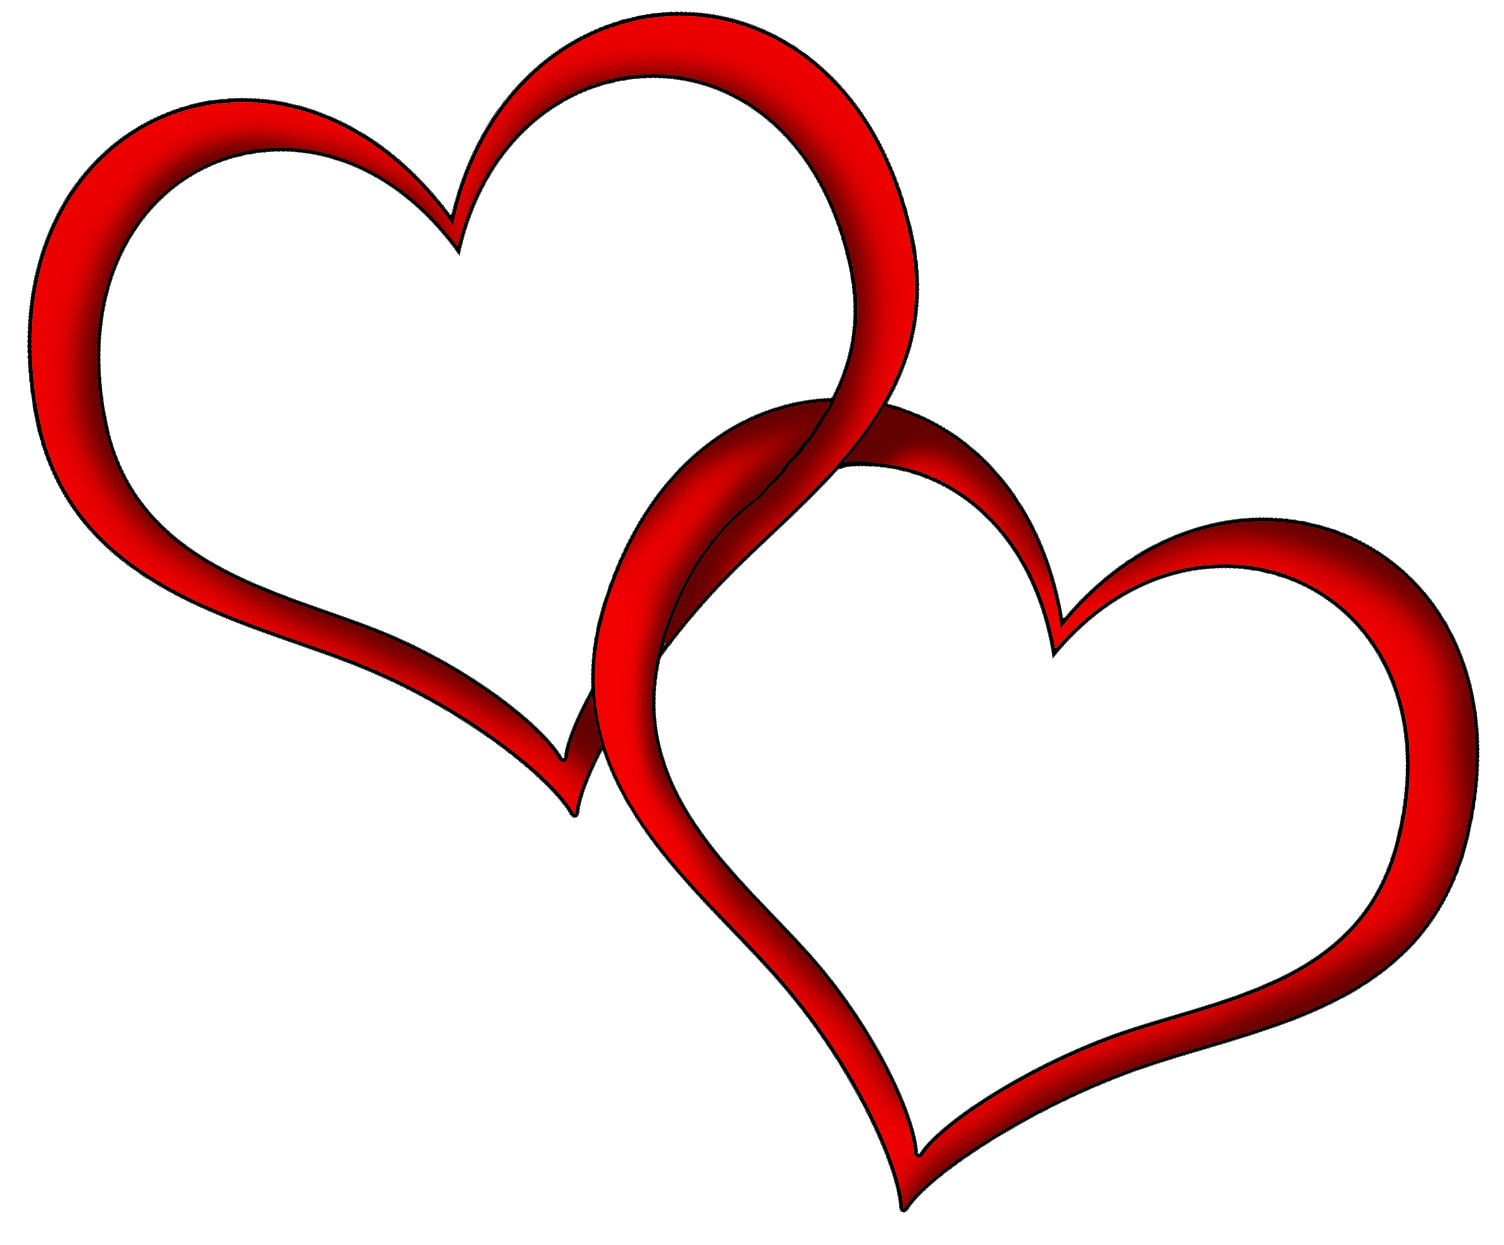 Heart lines clipart svg black and white library Free Give Heart Cliparts, Download Free Clip Art, Free Clip Art on ... svg black and white library